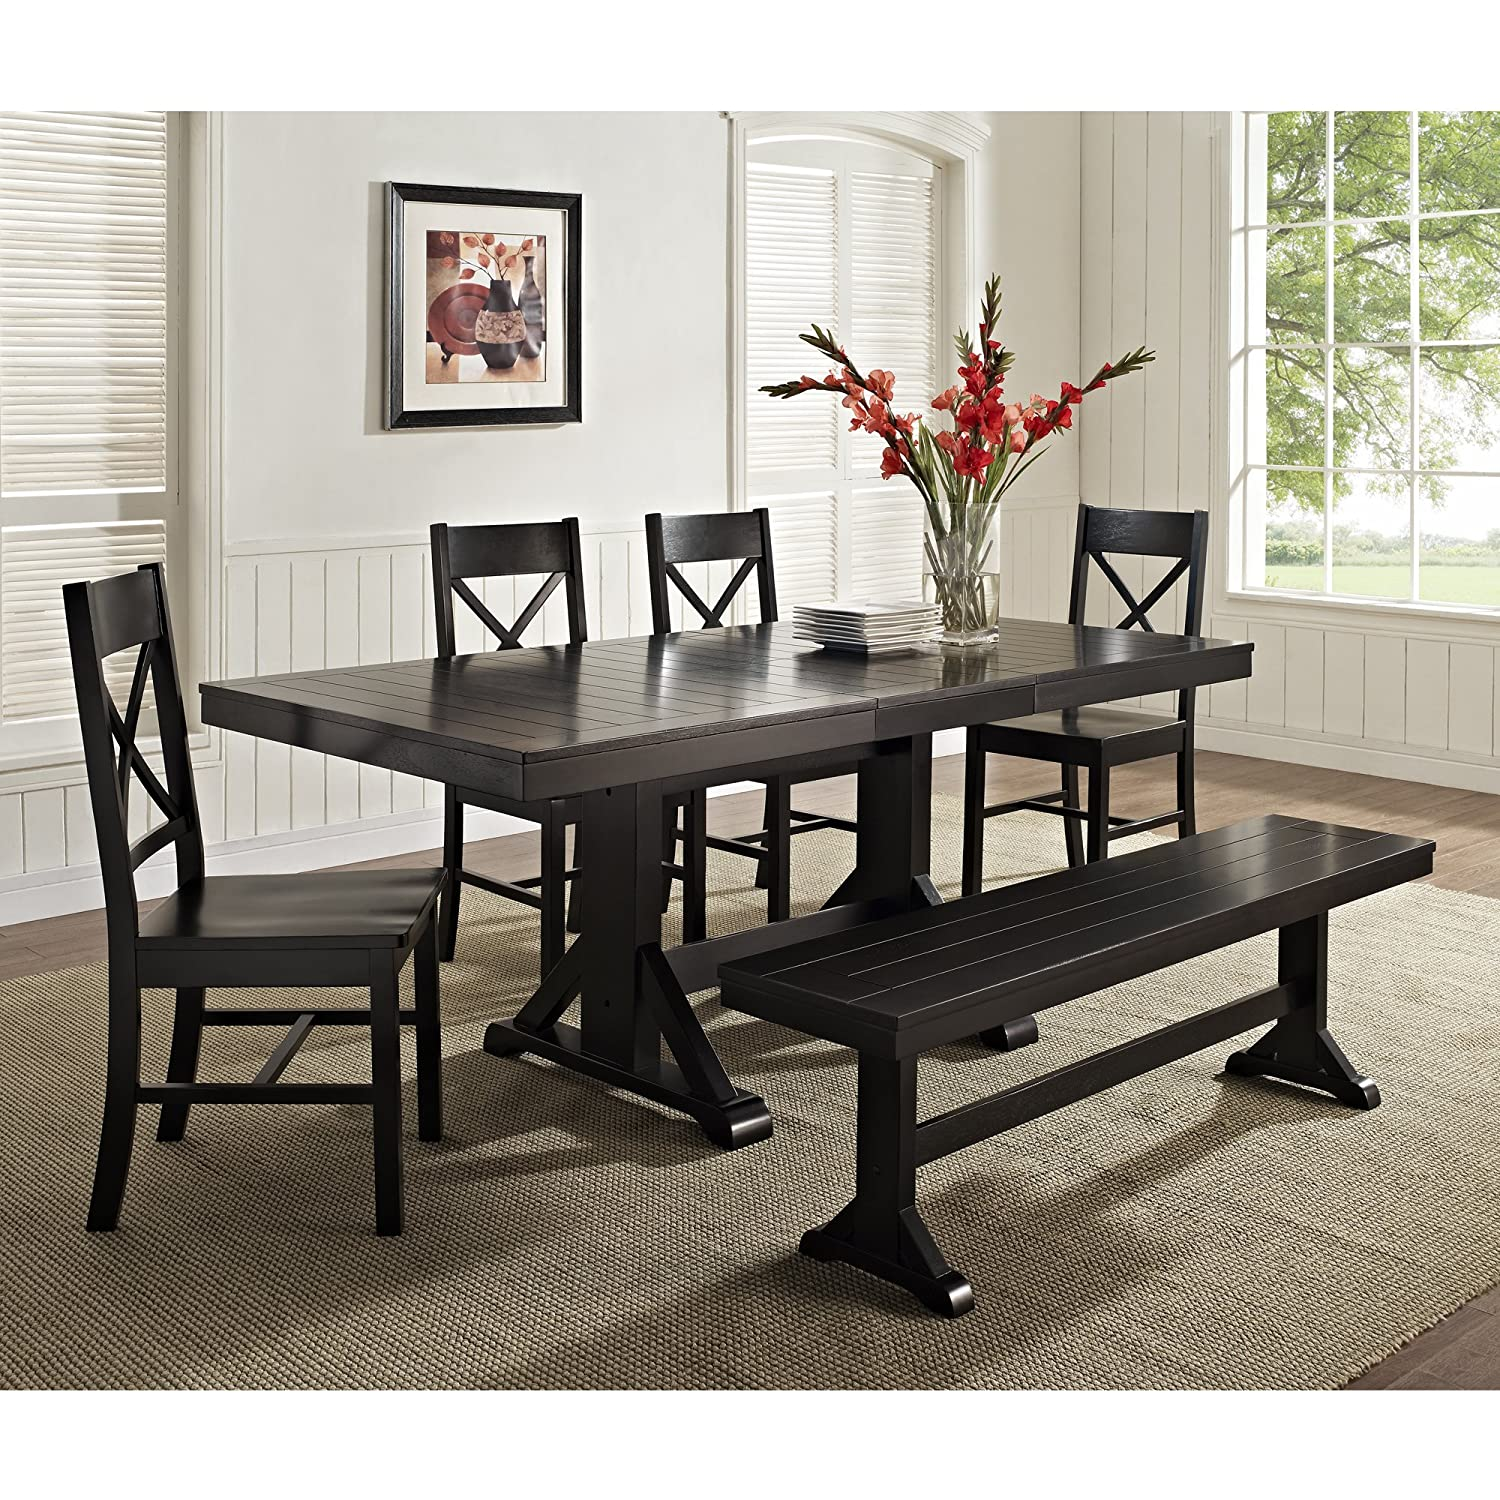 sc 1 st  Amazon.com & Amazon.com: WE Furniture Solid Wood Black Dining Bench: Kitchen \u0026 Dining